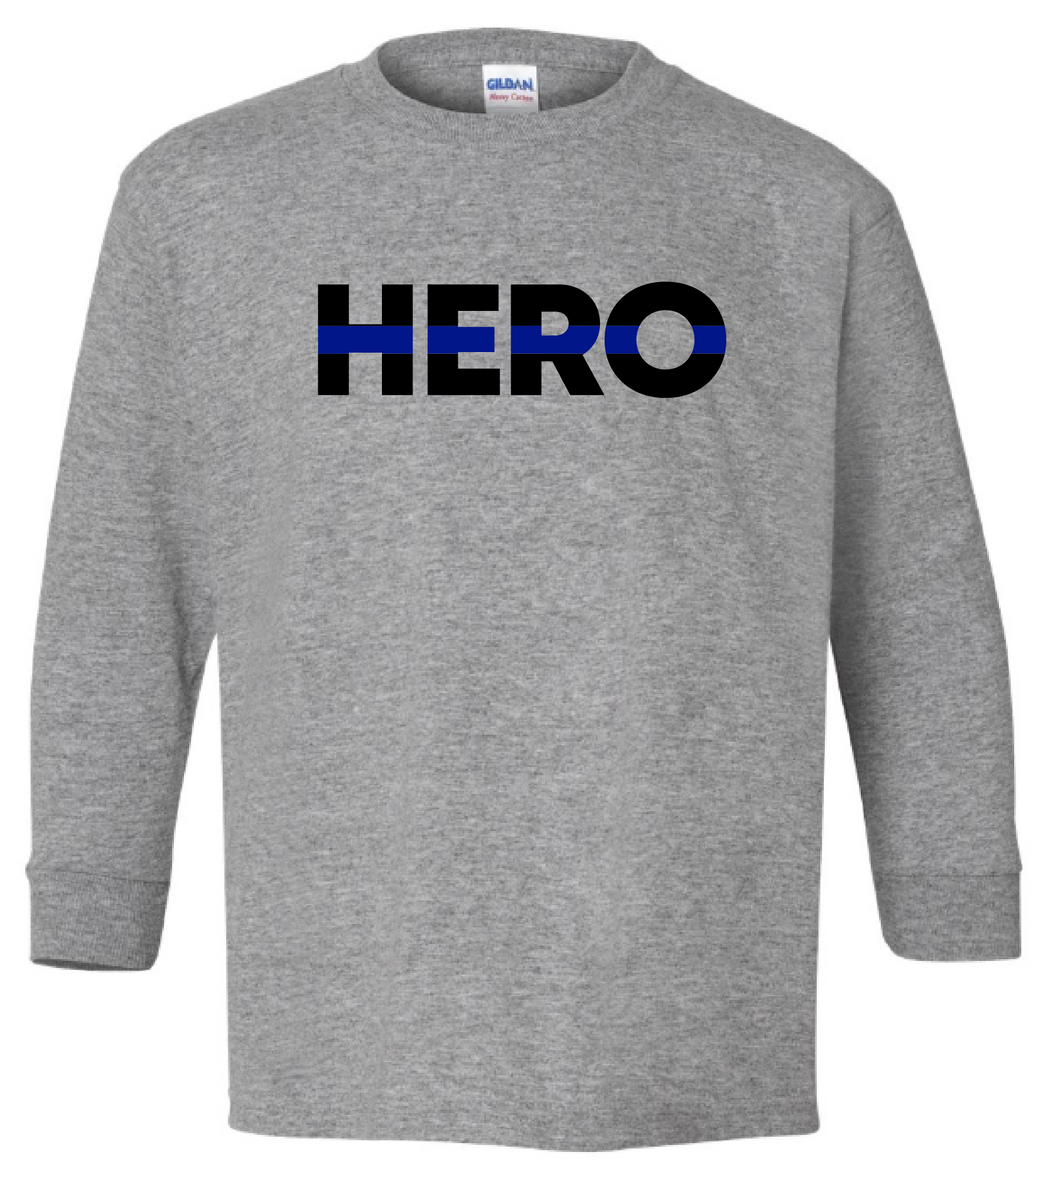 YOUTH - HERO with Blue Line (with or without badge number) - Long Sleeve T-shirt